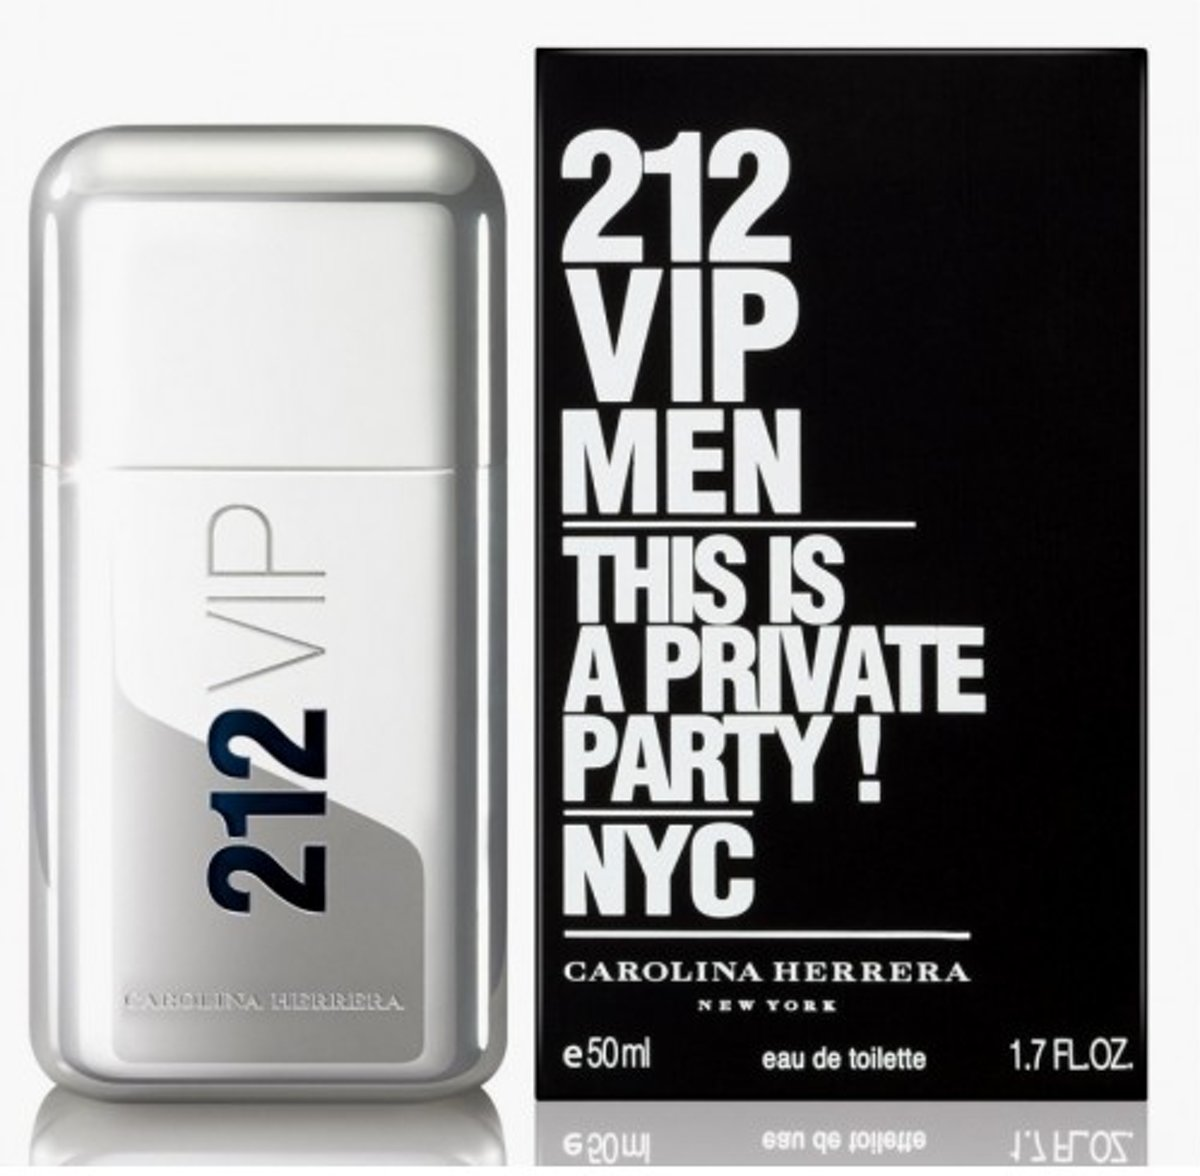 MULTI BUNDEL 3 stuks Carolina Herrera 212 Vip Men Eau De Toilette Spray 50ml